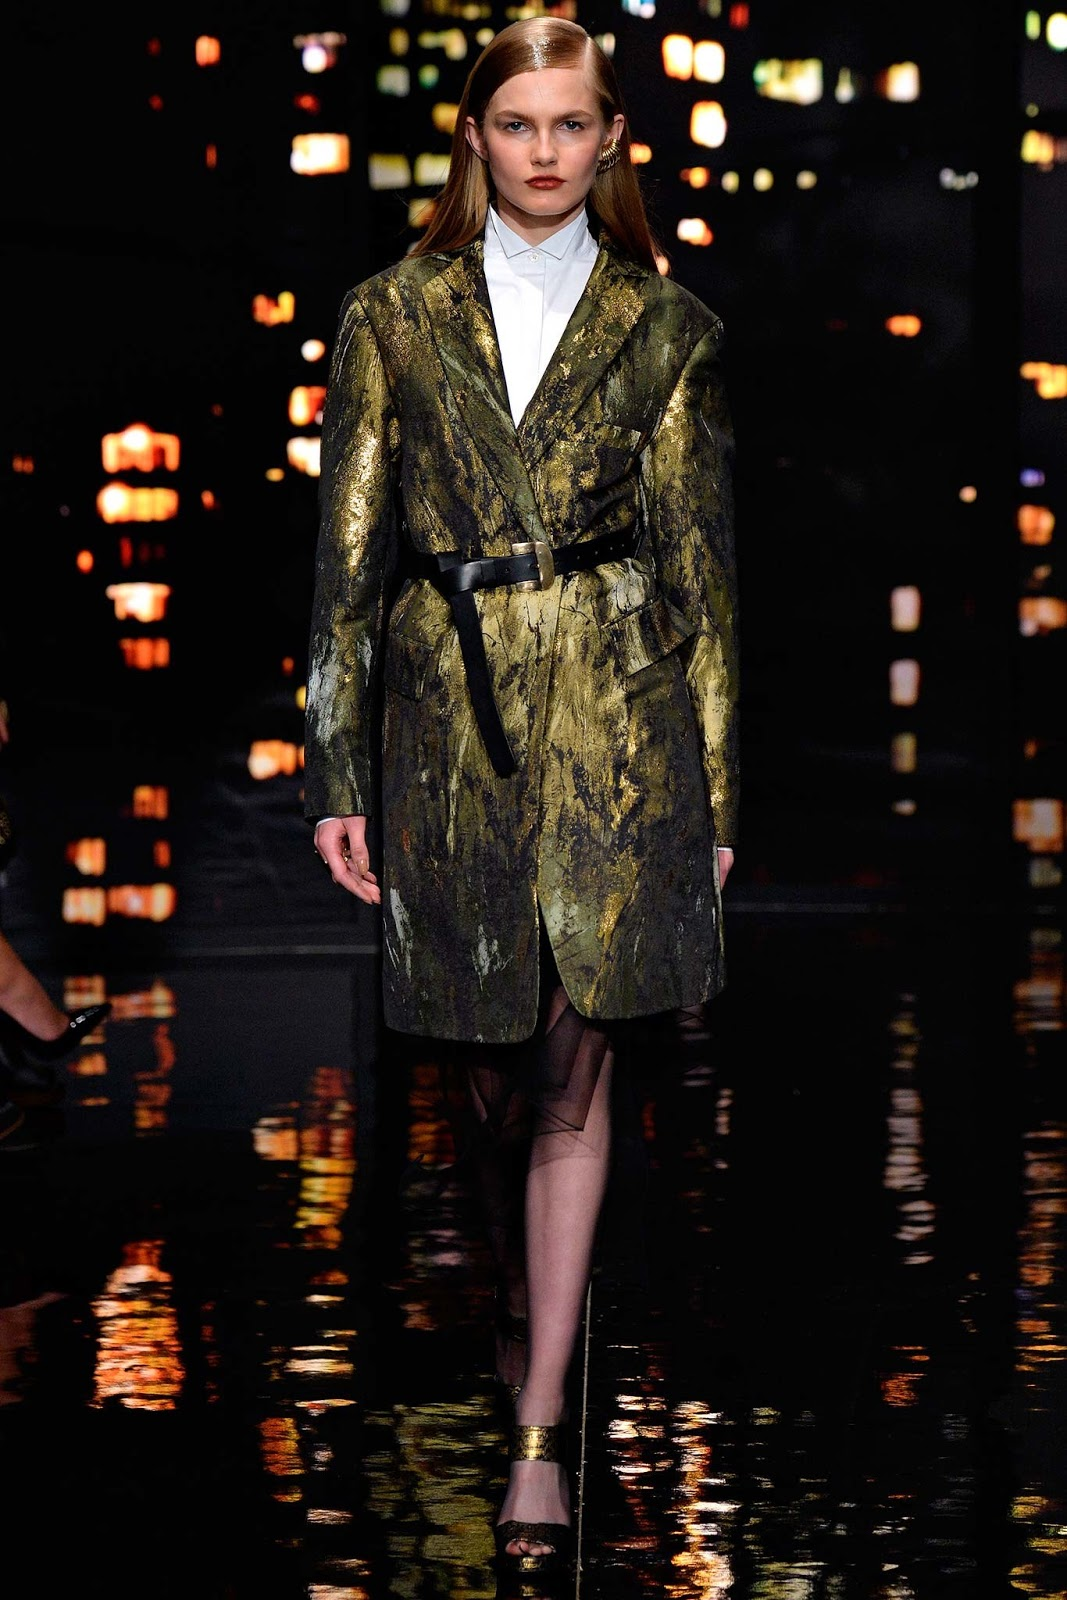 Brocade trend on AW 2015 runway at Donna Karan / via www.fashionedbylove.co.uk